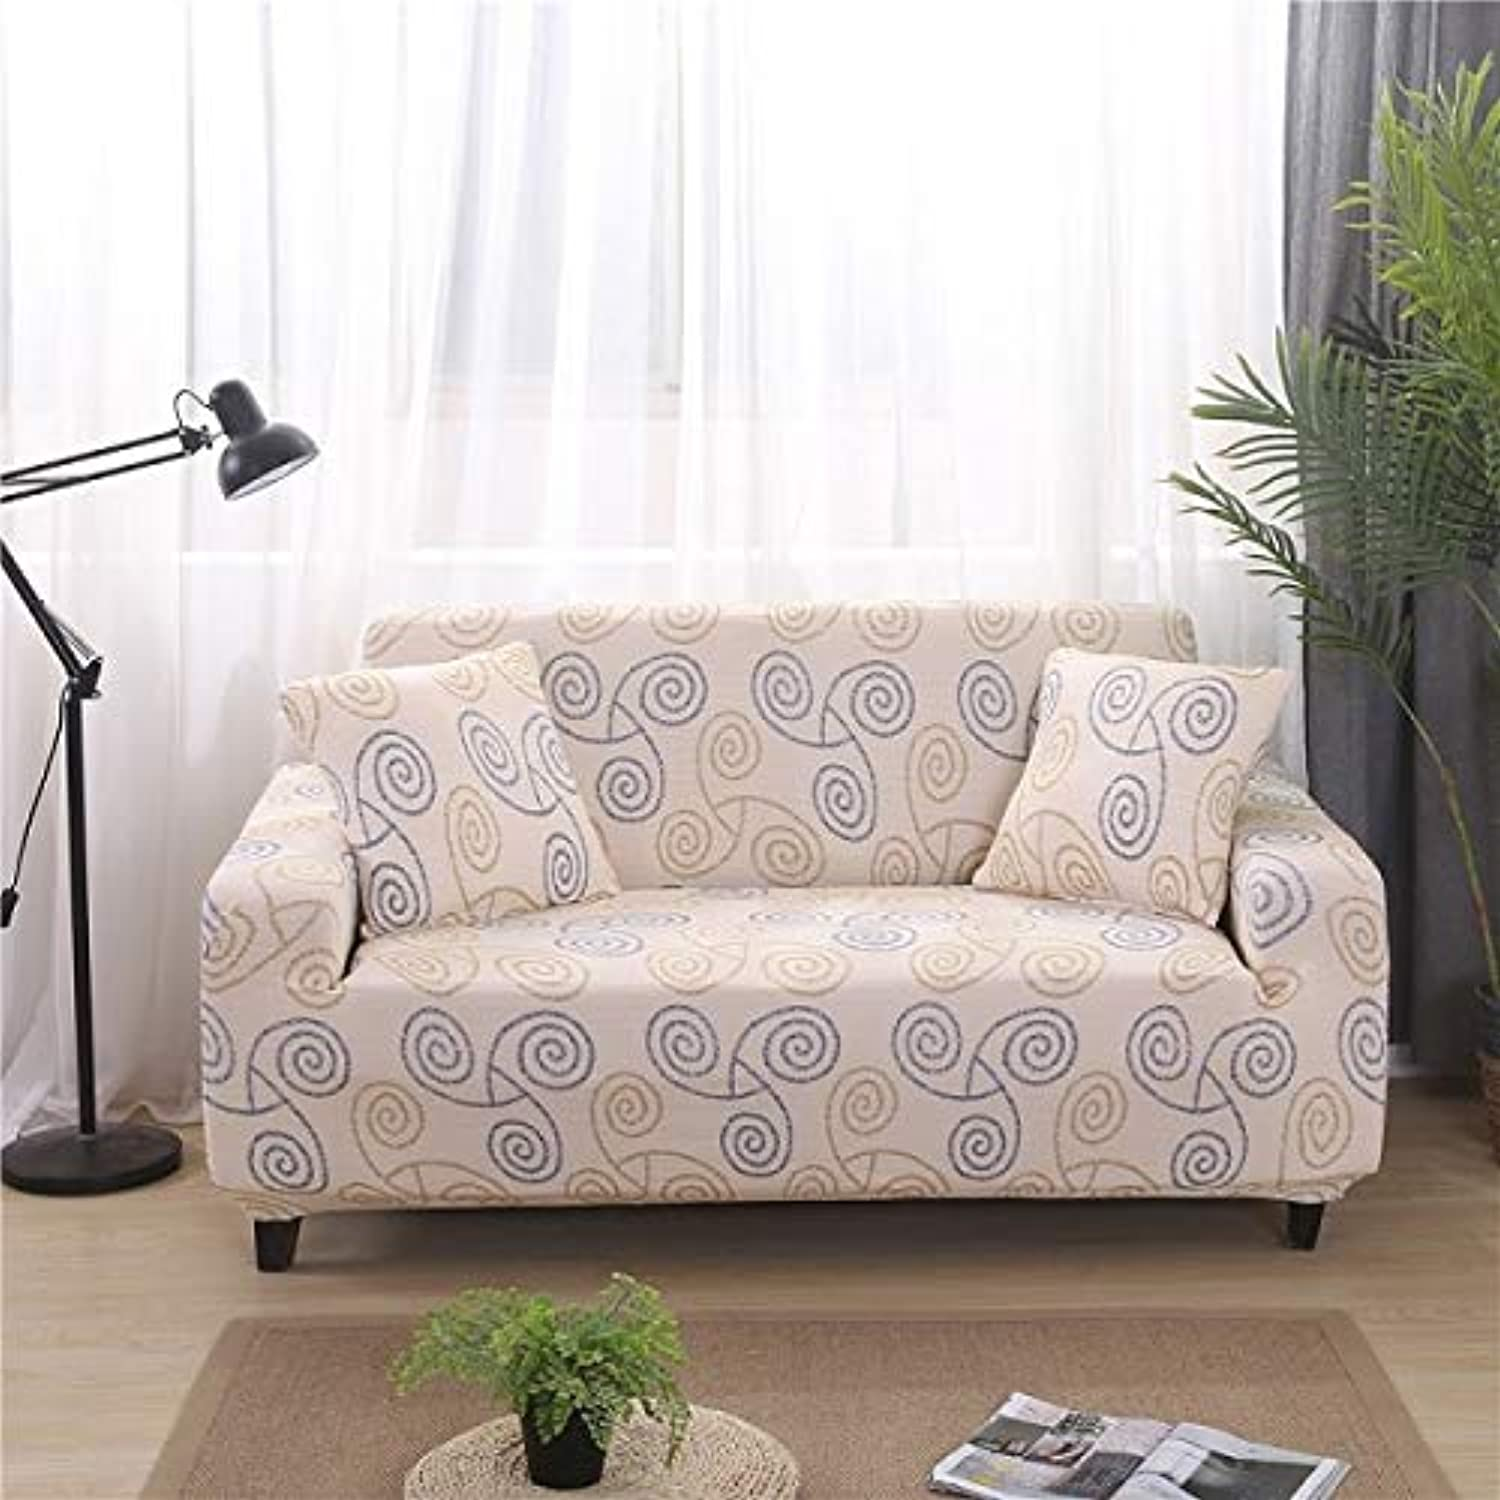 PlenTree 1pcs Elastic Printed Sofa Tight Bag All-Inclusive Sofa Set Elastic Sofa Towels Single Two-Person Three-Seat Four-Seat  quweikongjian, 2 Seater